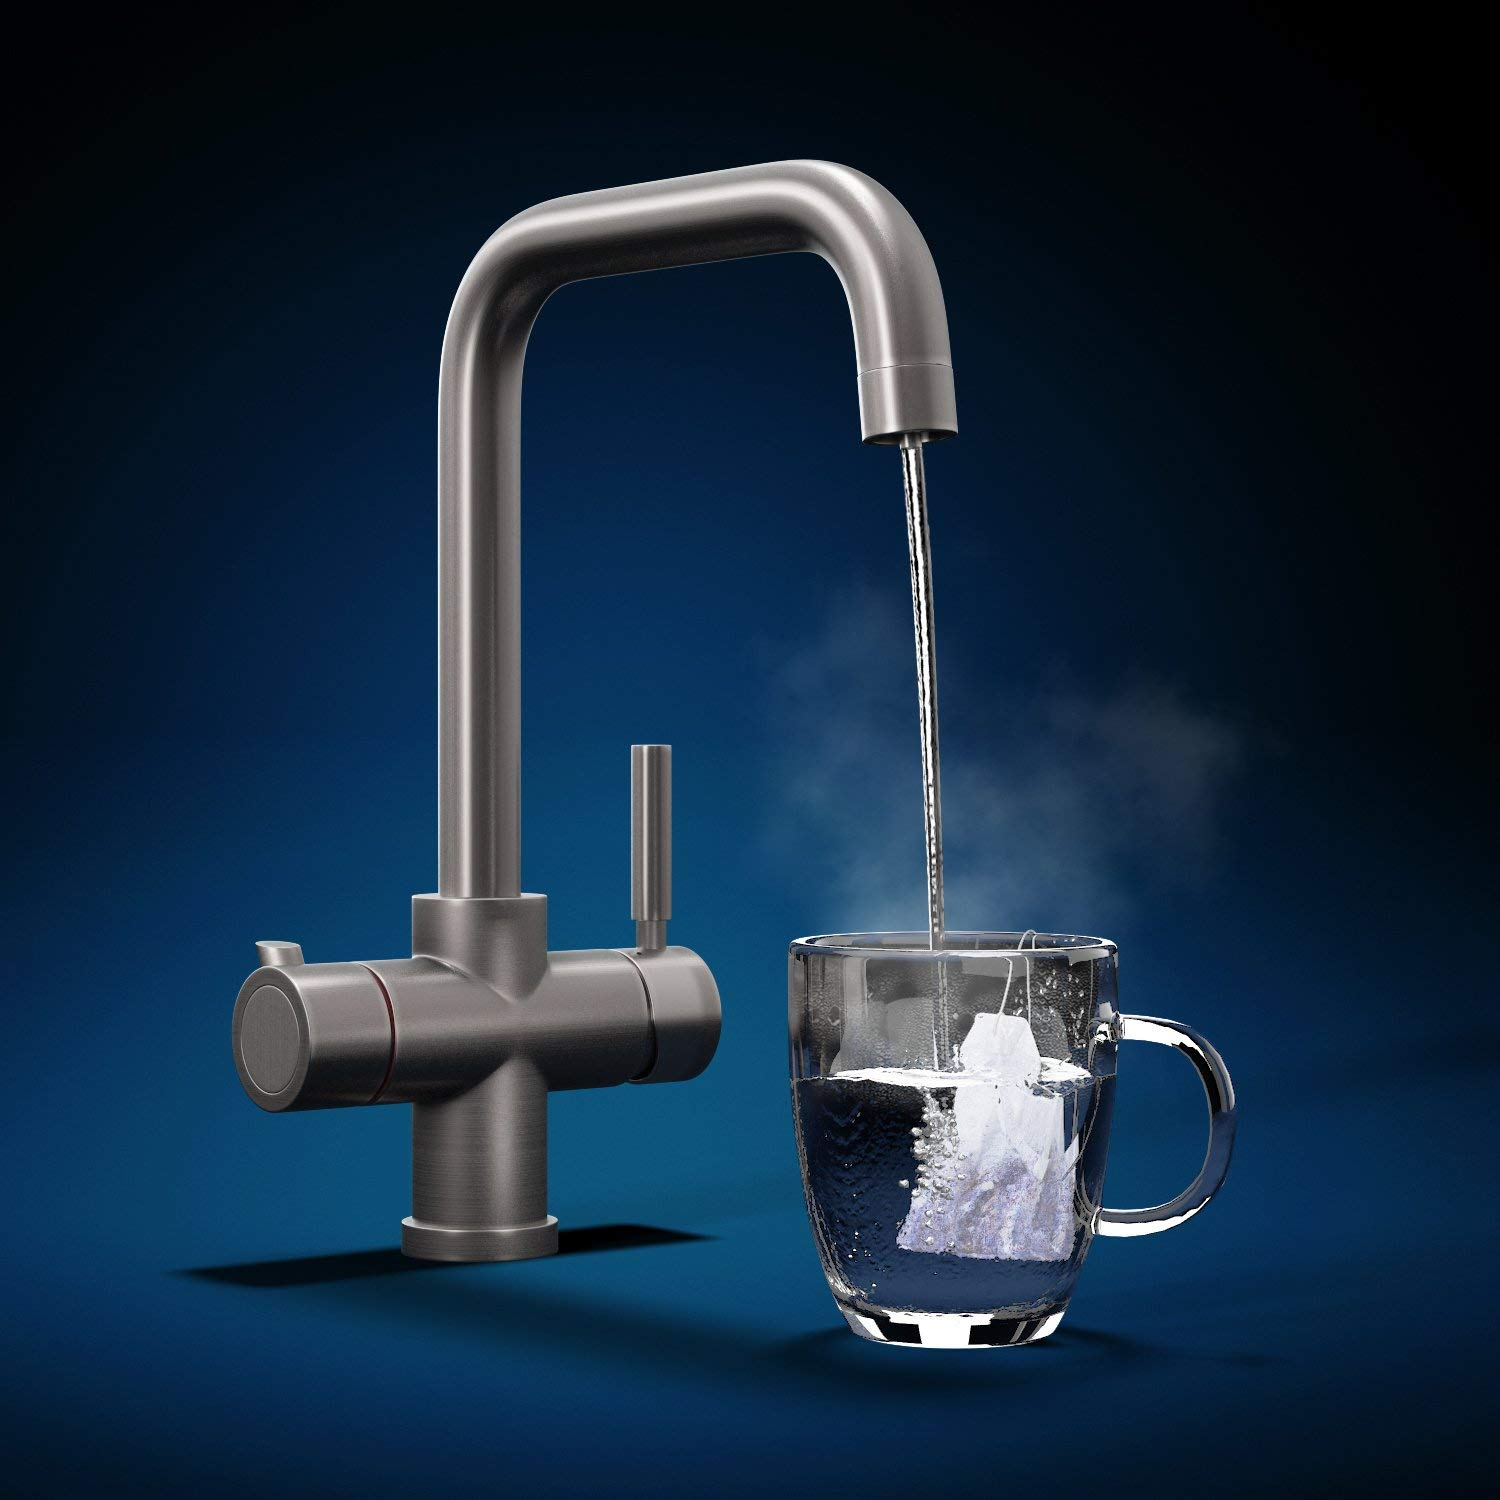 Fohen Instant Boiling Water Contemporary 3 in 1 Tap Brushed Gunmetal